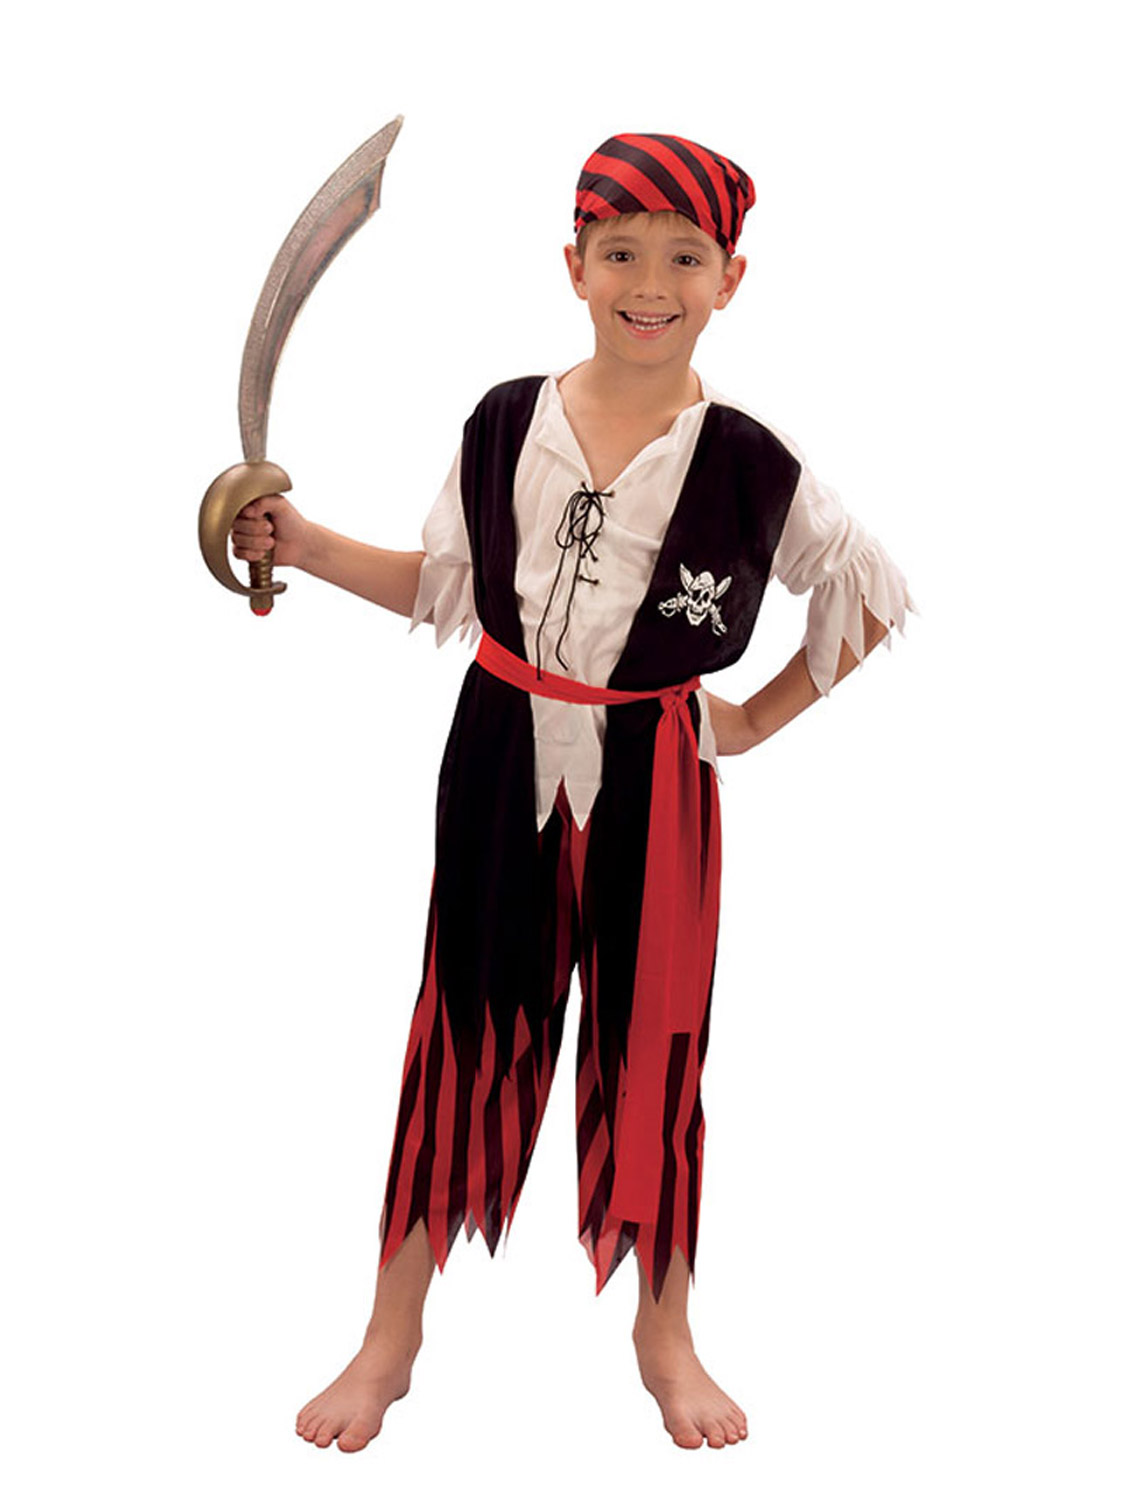 b9d3ceb2 Details about Boys Pirate Costume Kids Caribbean Fancy Dress Outfit Age 4 5  6 7 8 9 10 11 12